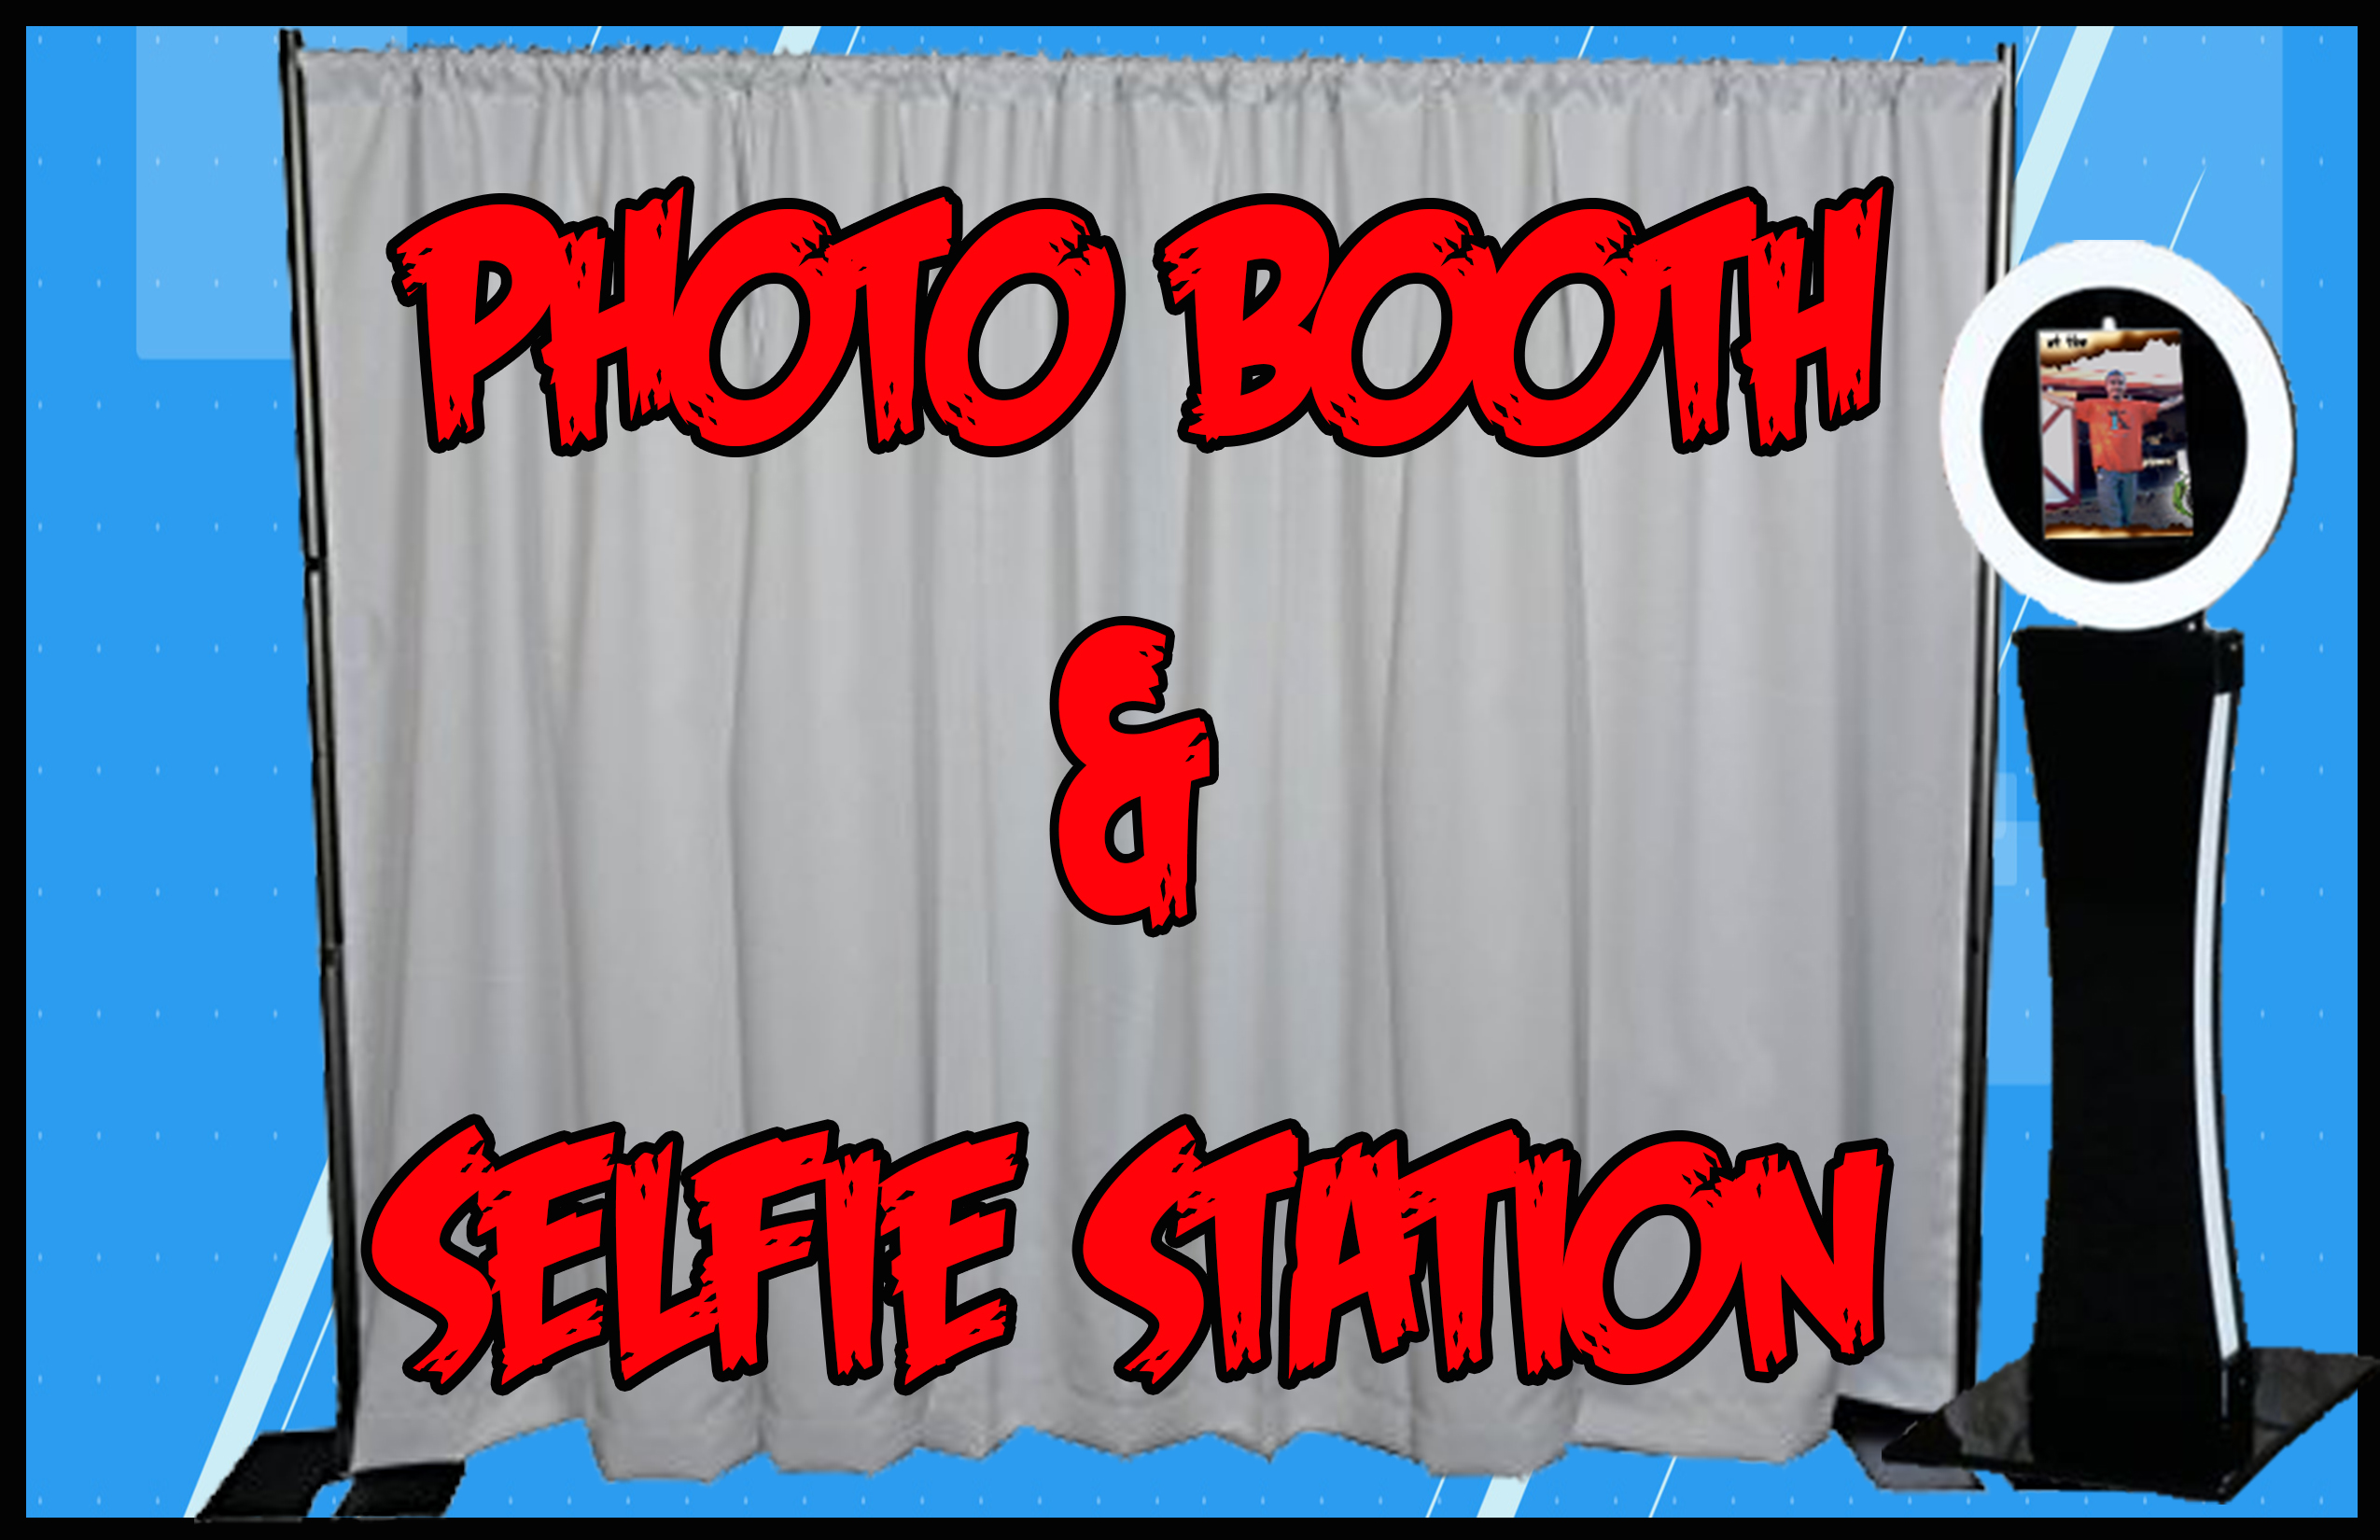 View Selfie Station